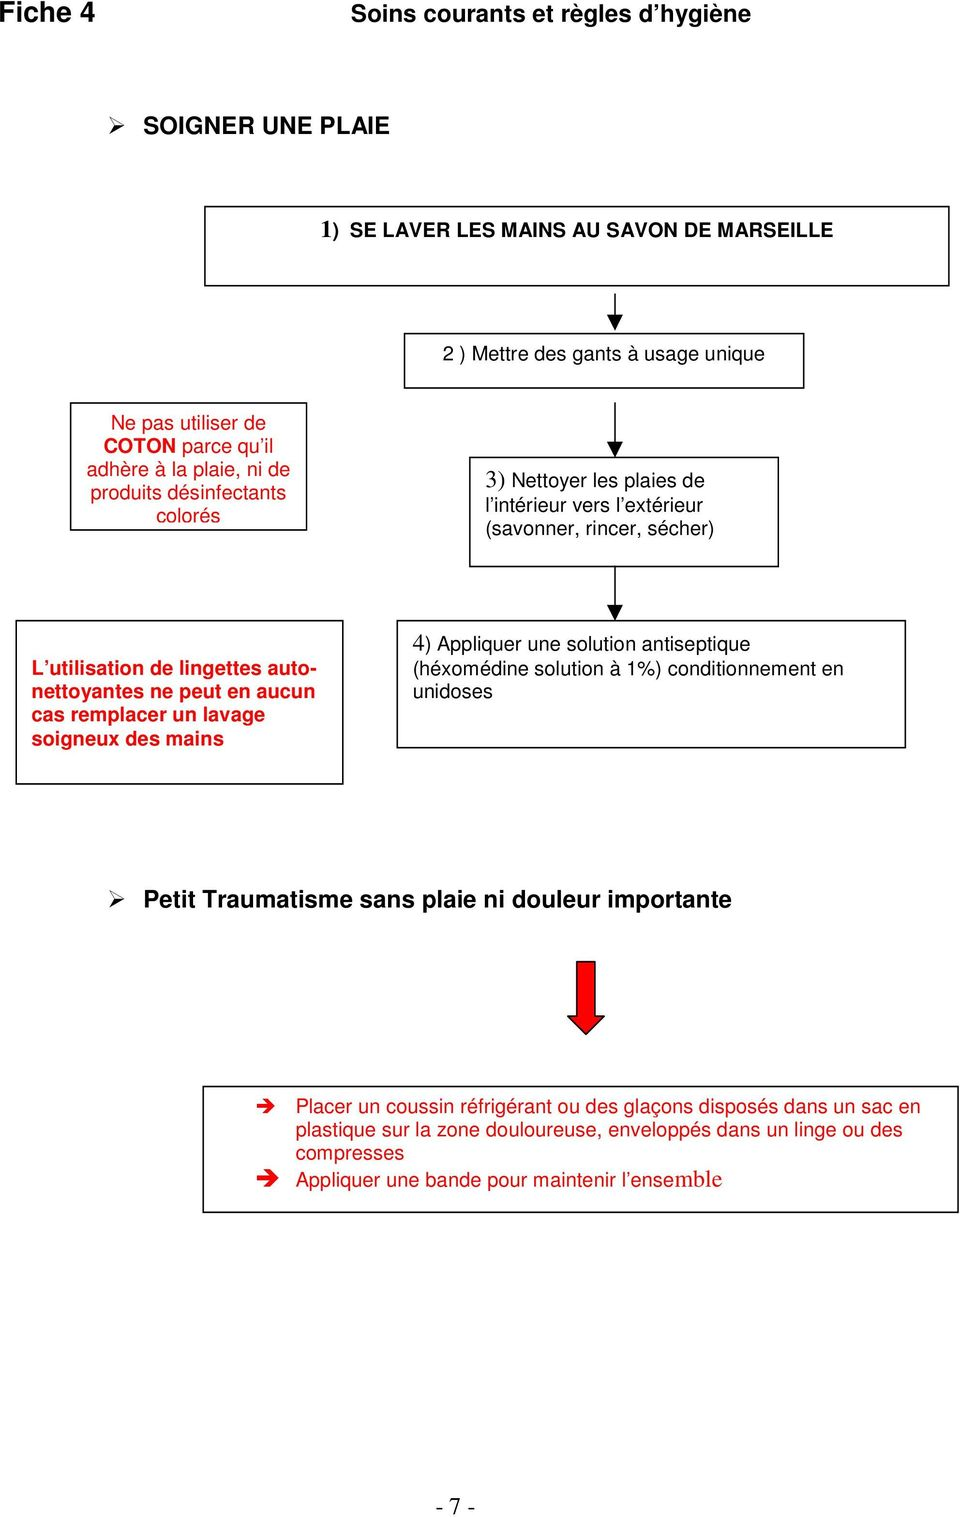 remplacer un lavage soigneux des mains 4) Appliquer une solution antiseptique (héxomédine solution à 1%) conditionnement en unidoses Petit Traumatisme sans plaie ni douleur importante Placer